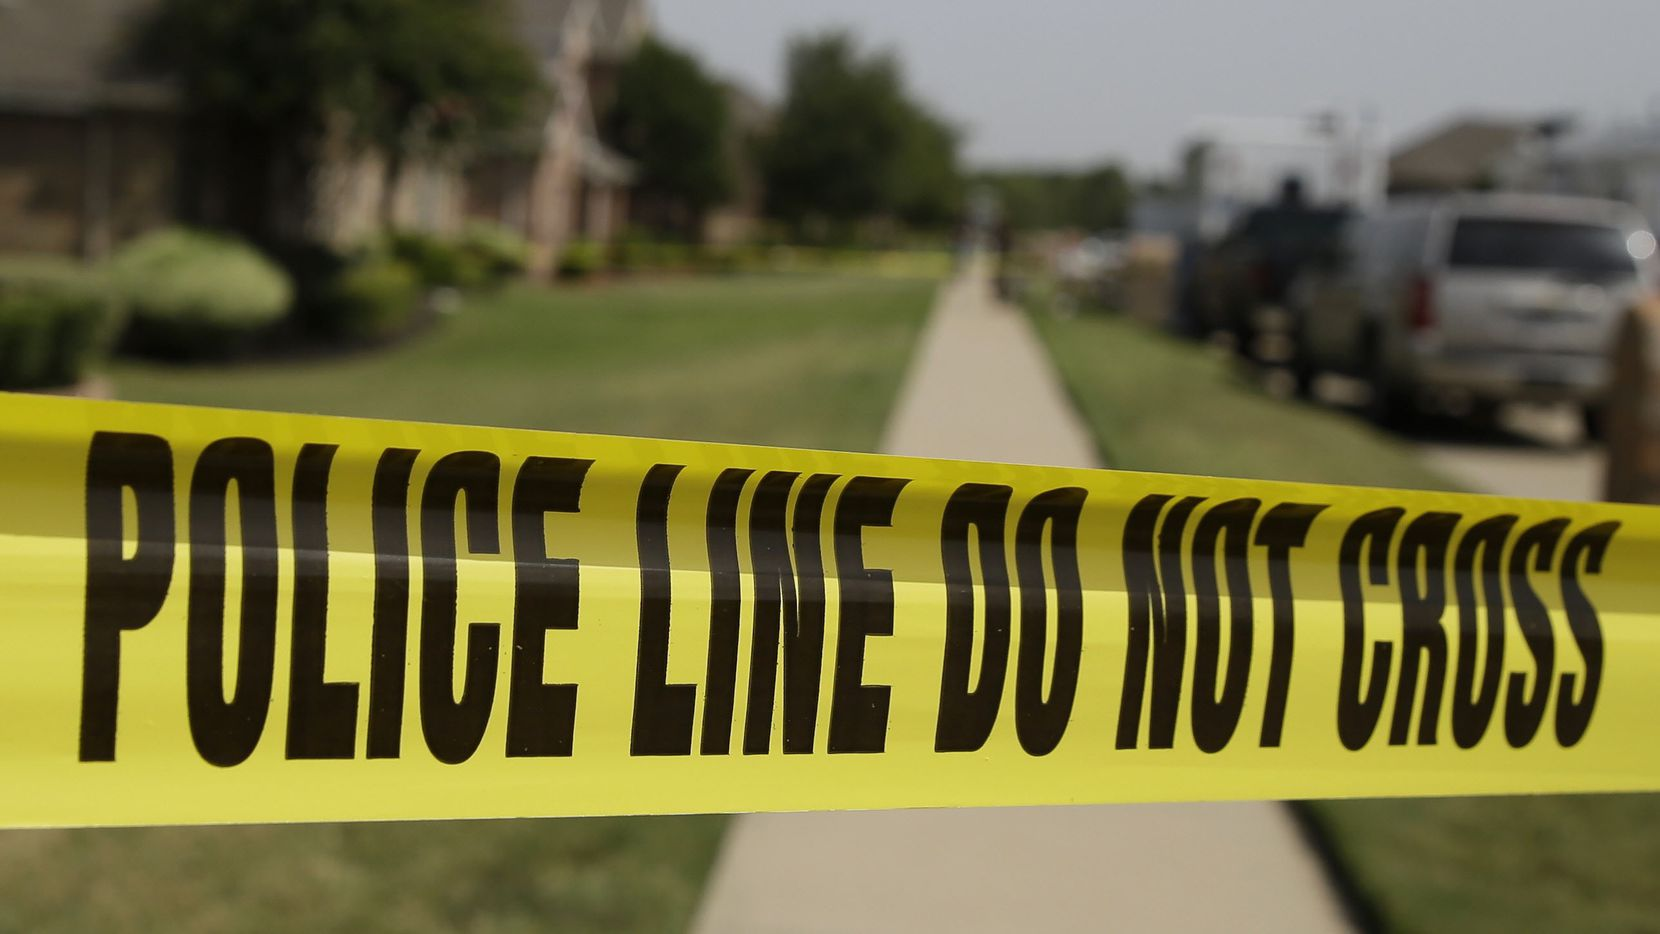 The shooting happened about noon in the 3800 block of Mahonia Court, near Park Springs Boulevard and West Sublett Road. It was reported as an accident, police said.